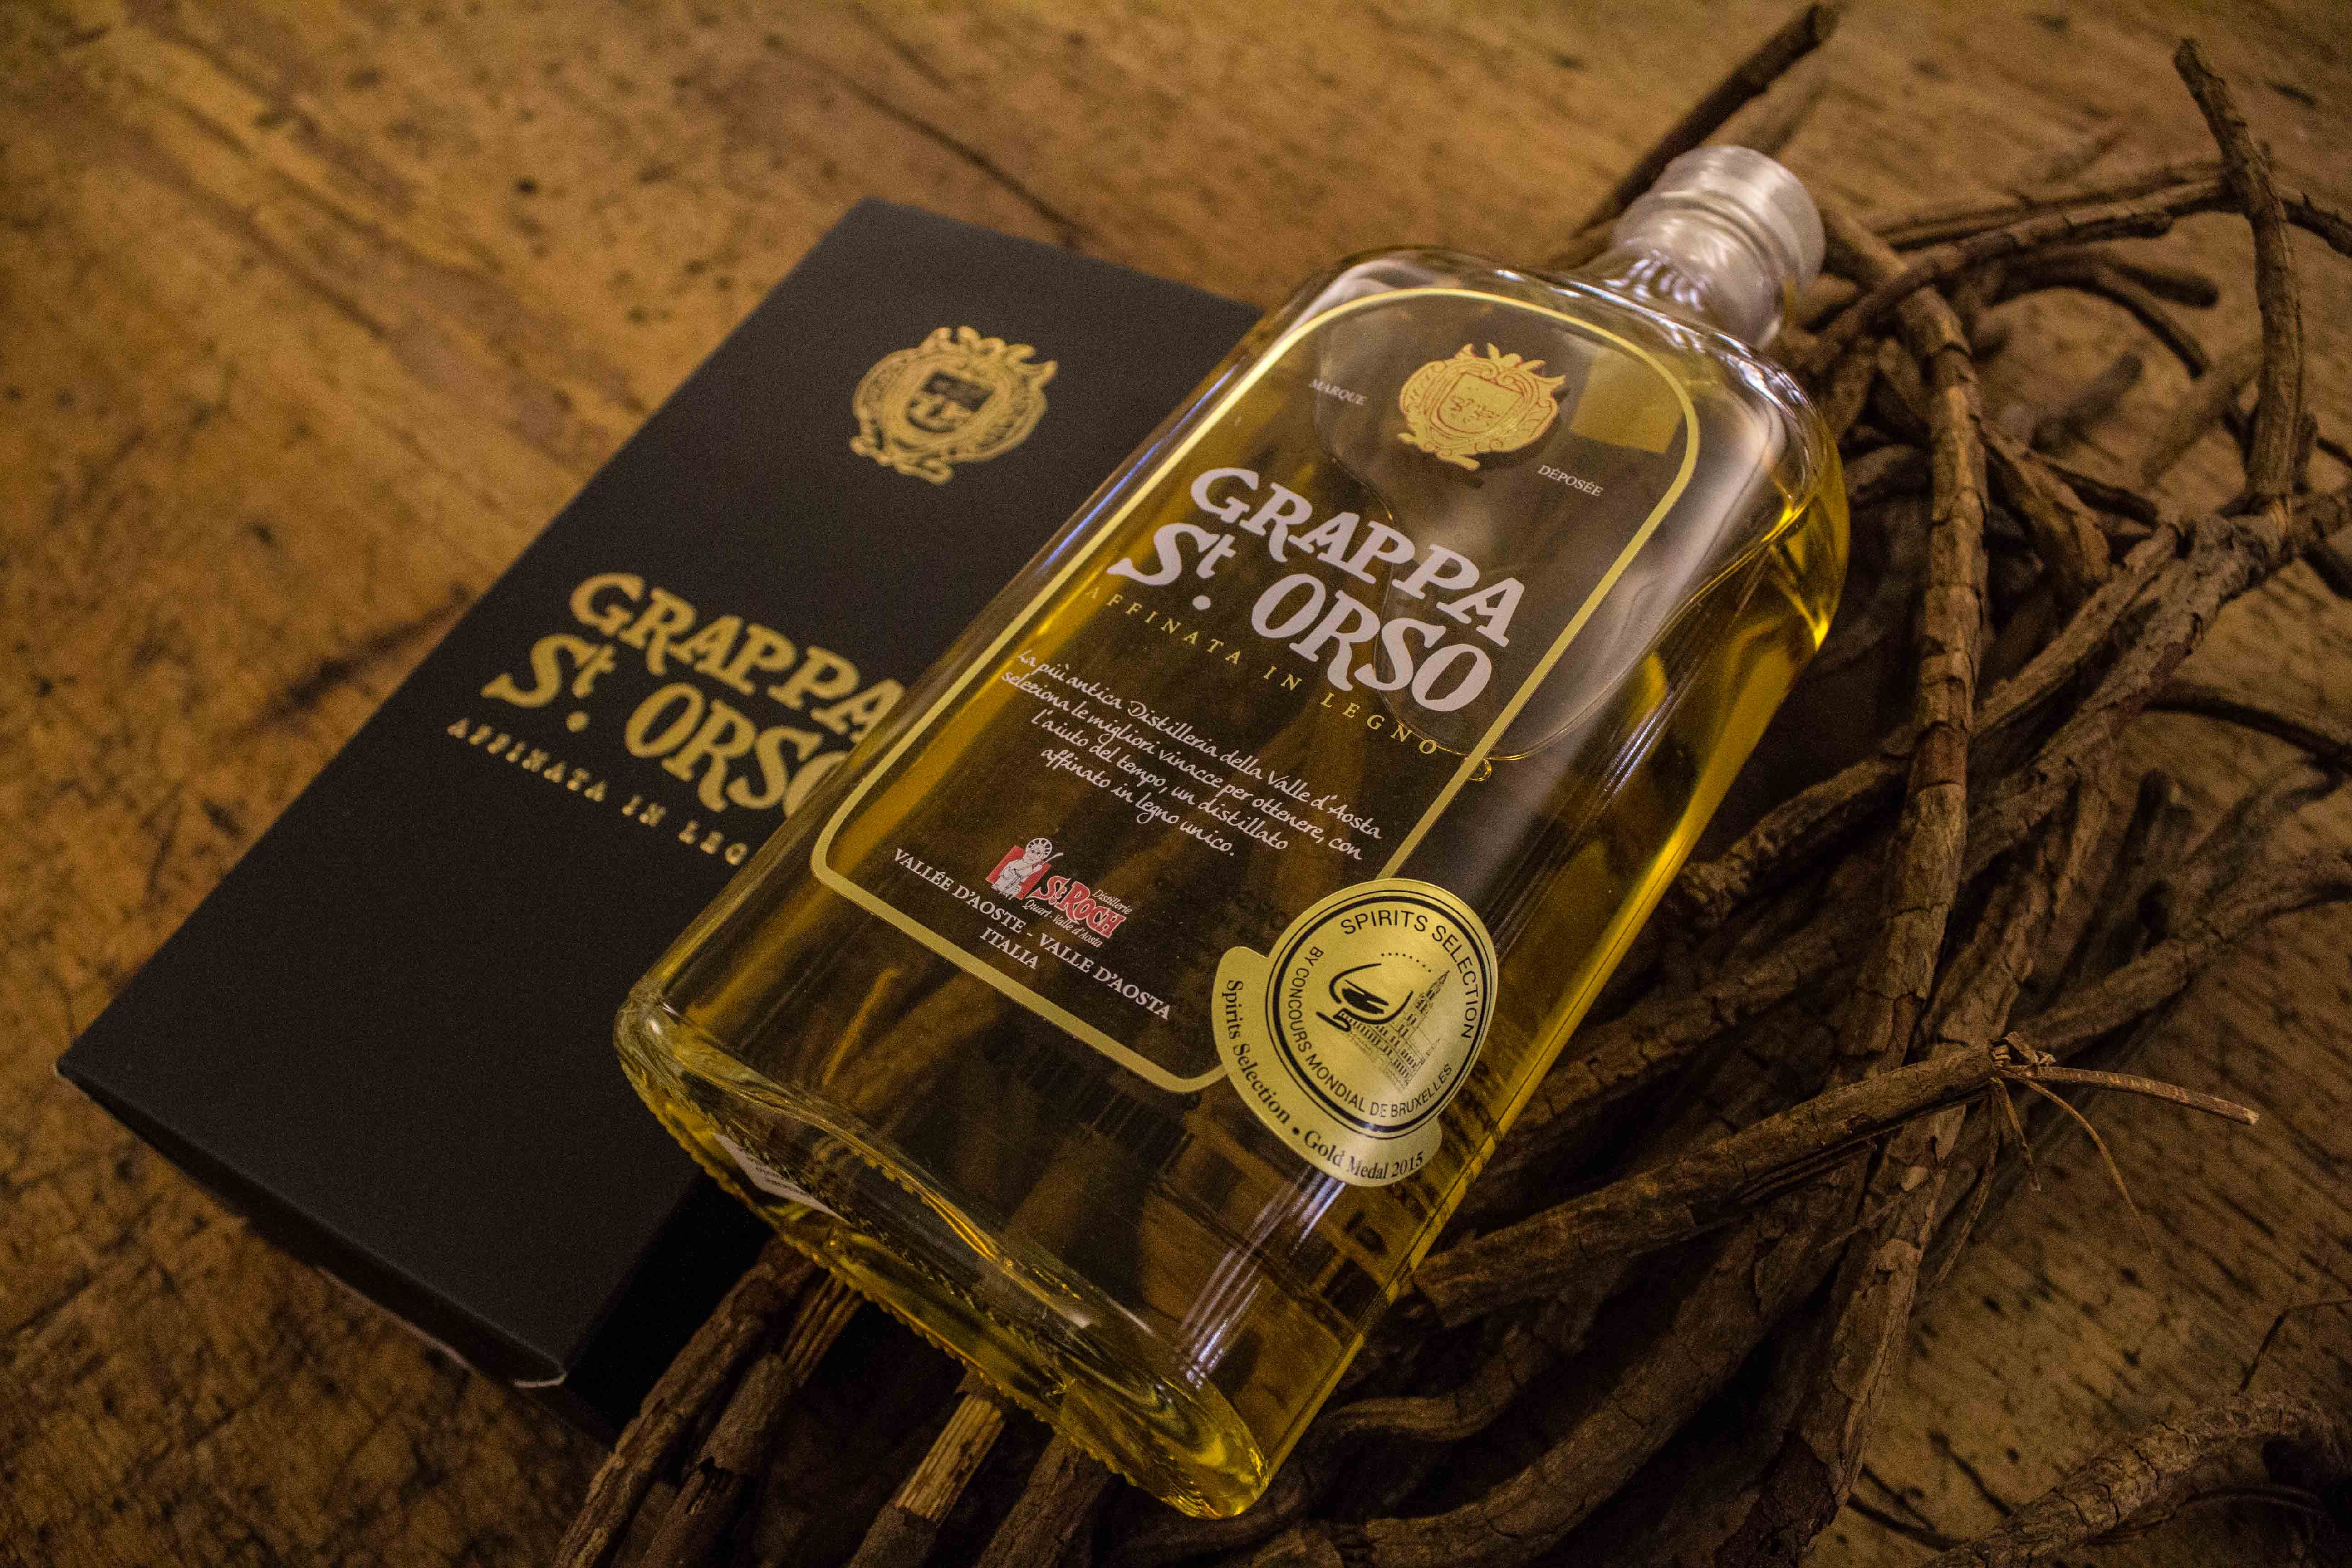 Grappa Sant'Orso - Aged in oak barrels